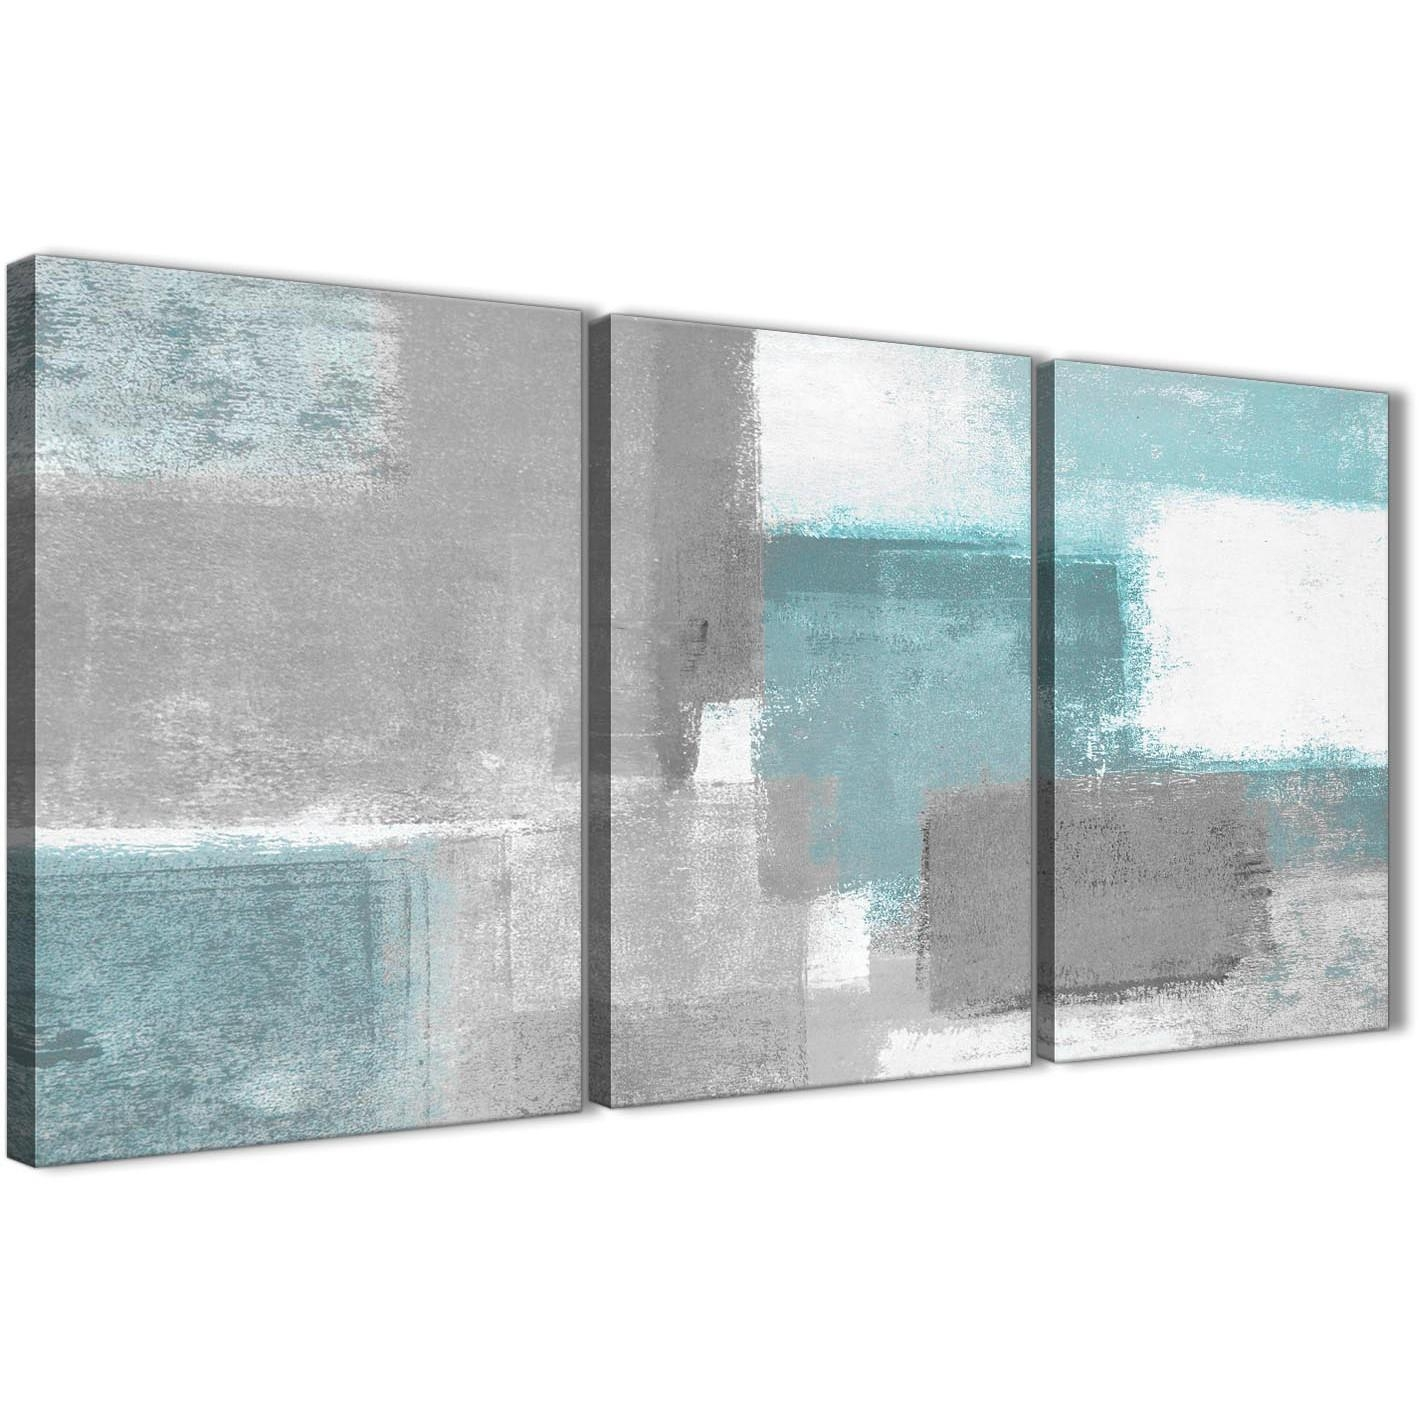 3 Panel Teal Grey Painting Living Room Canvas Wall Art Decor In Three Piece Canvas Wall Art (View 9 of 20)